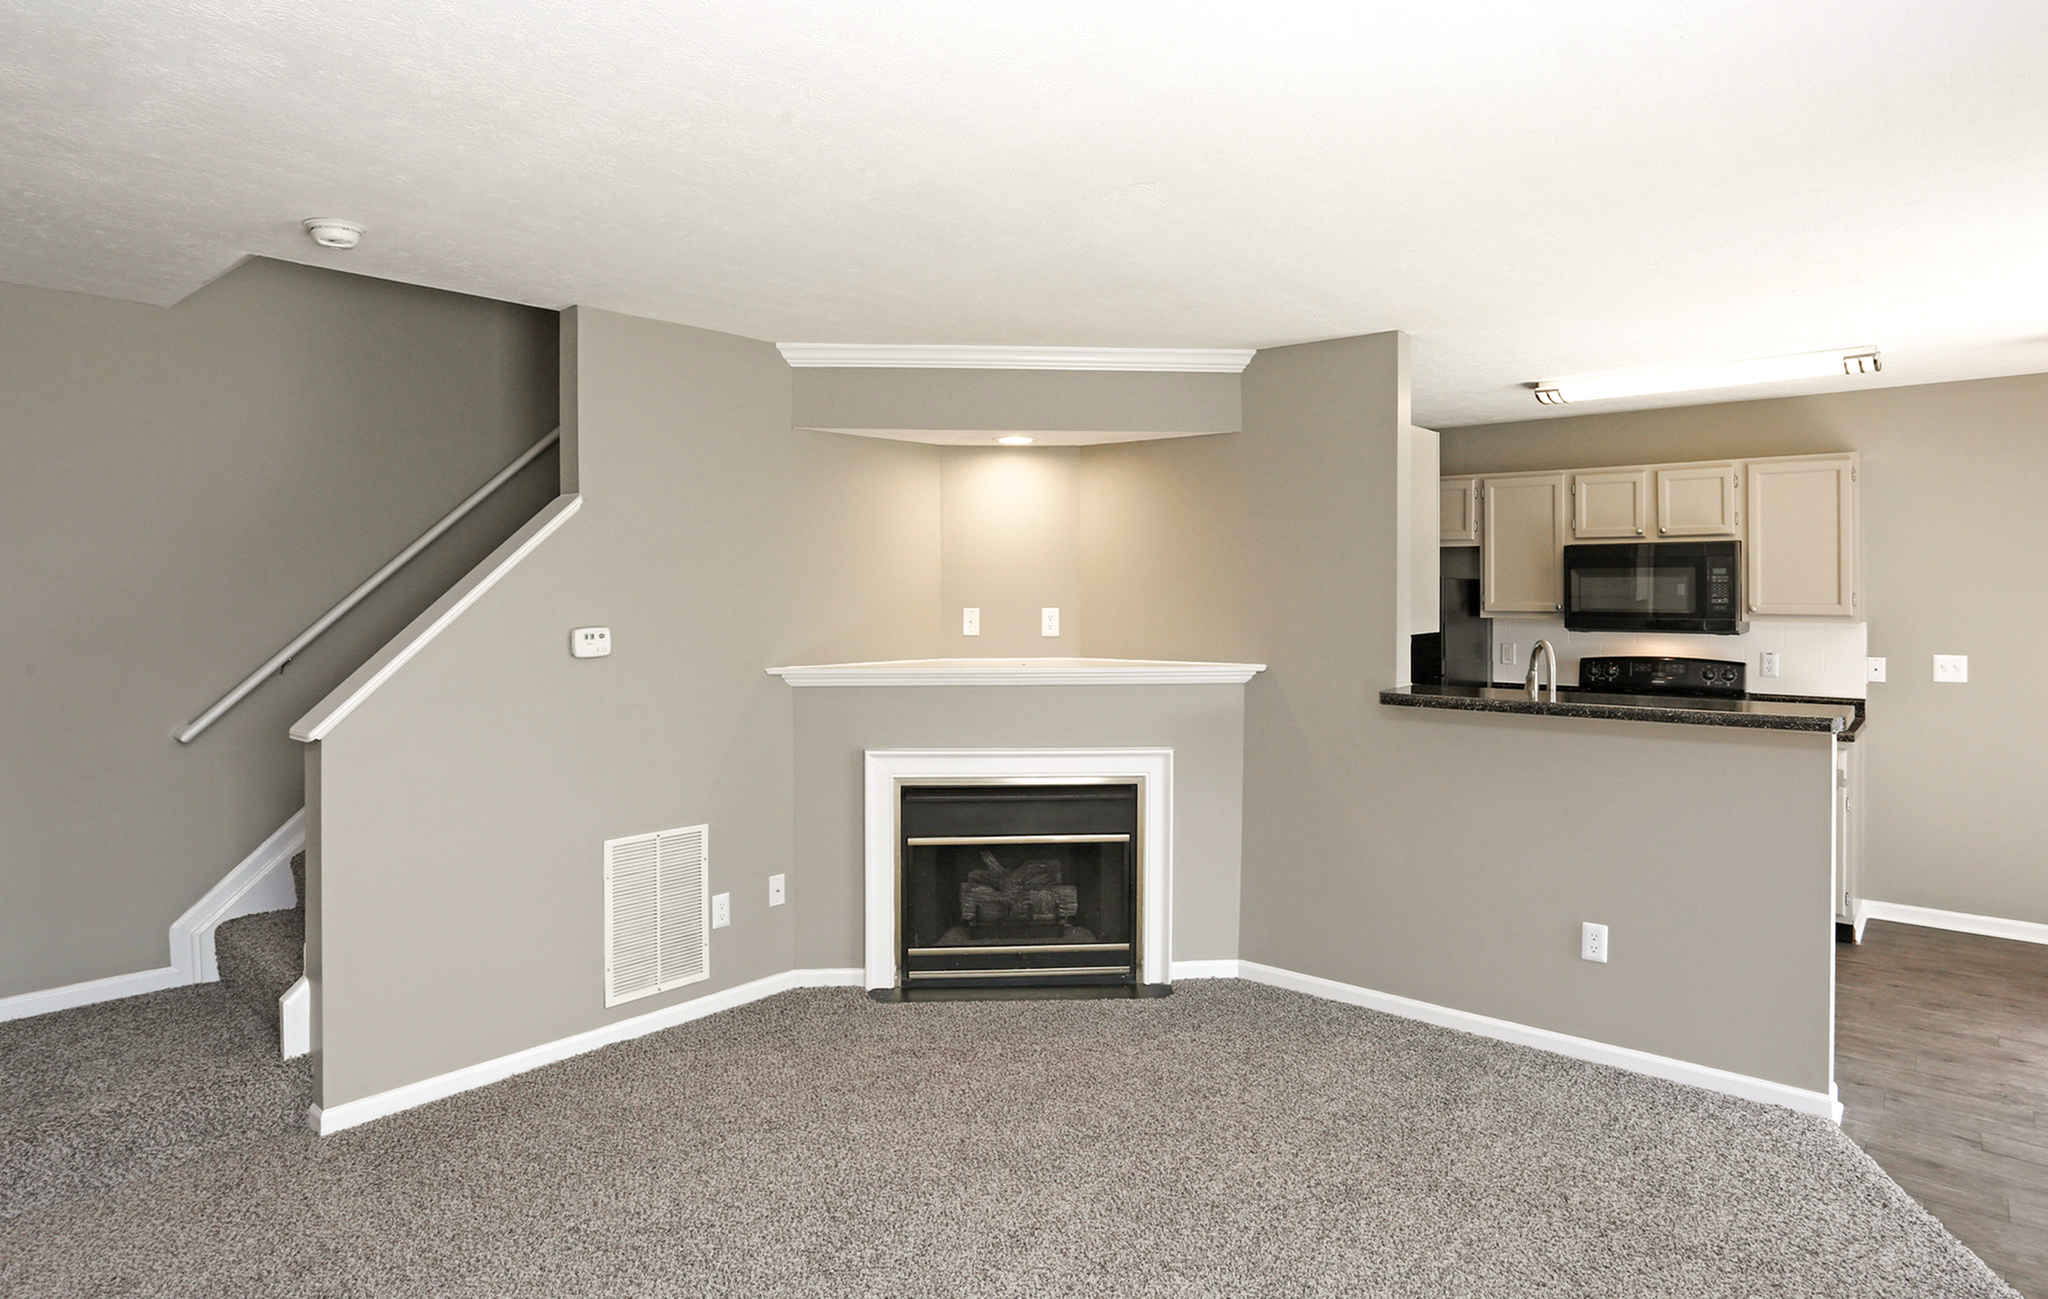 Image of Recently Renovated Interiors for Ashton Glen Apartments